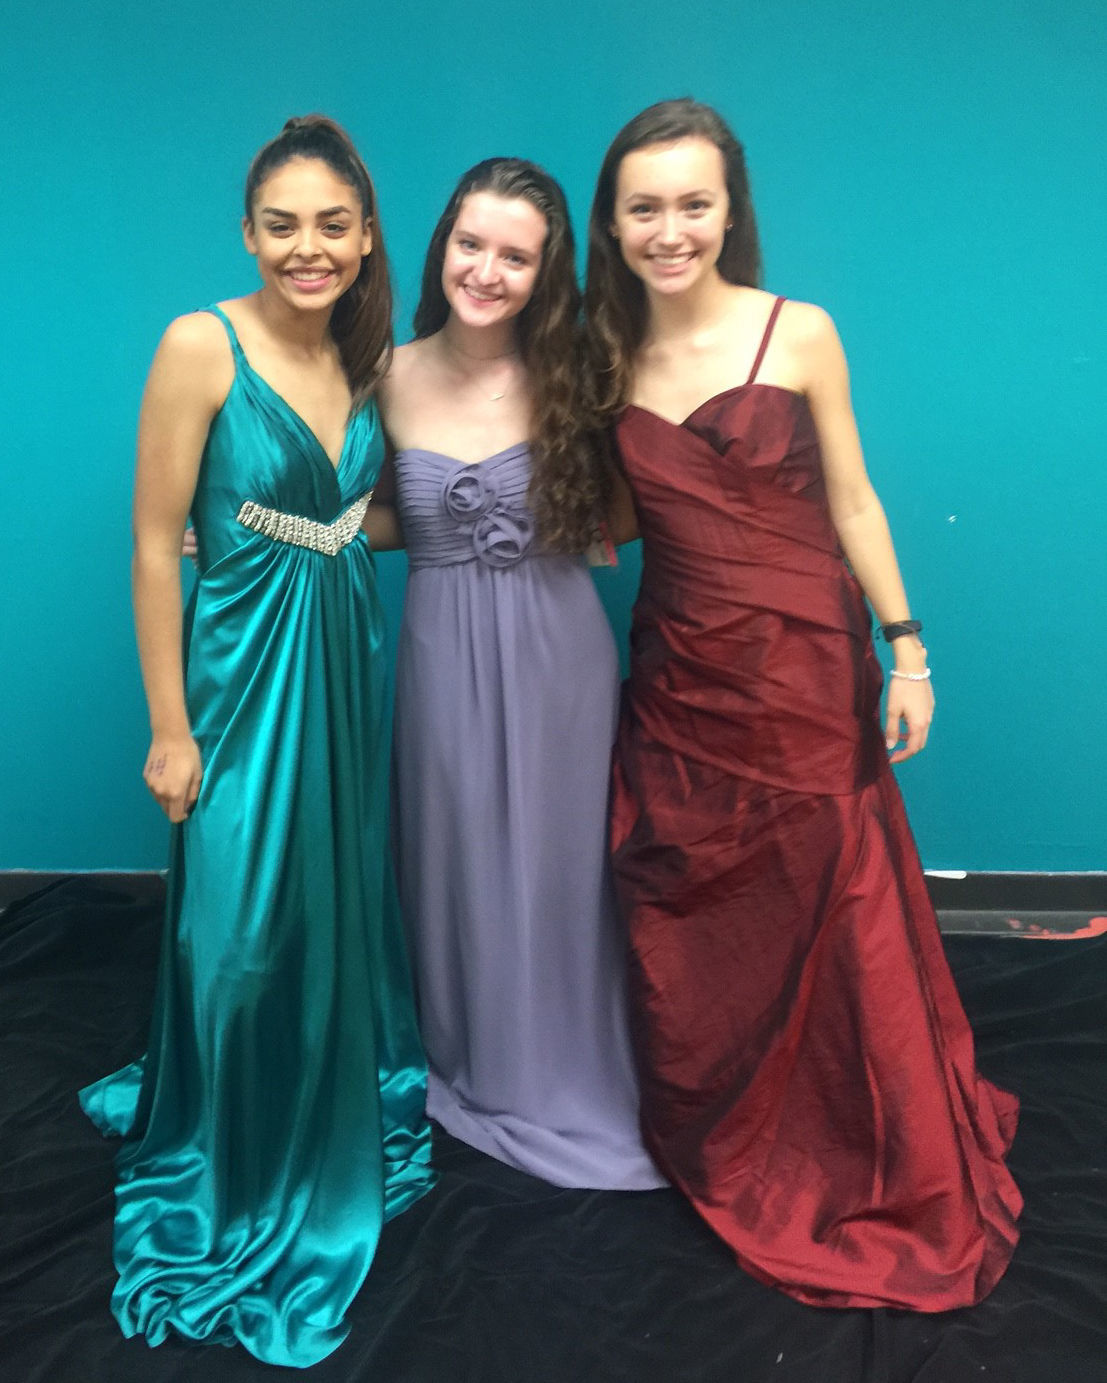 Groups offer free formal wear for prom-goers | Blog: Go Triad - A&E ...